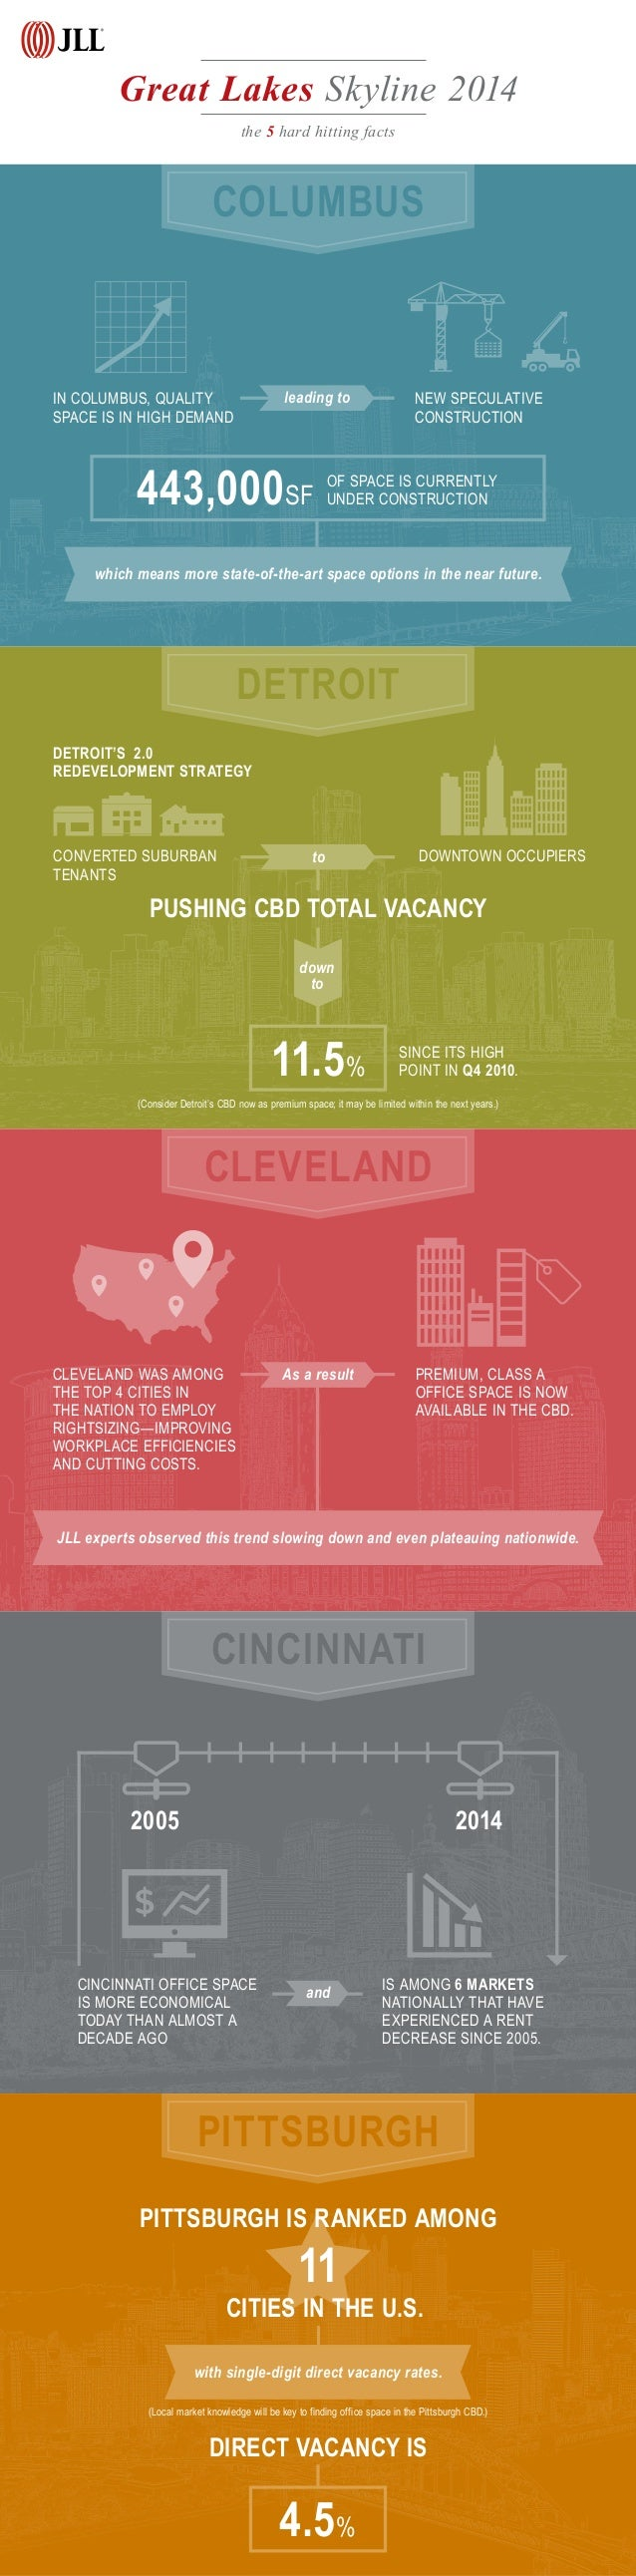 COLUMBUS DETROIT CLEVELAND CINCINNATI PITTSBURGH Great Lakes Skyline 2014 the 5 hard hitting facts IN COLUMBUS, QUALITY SP...